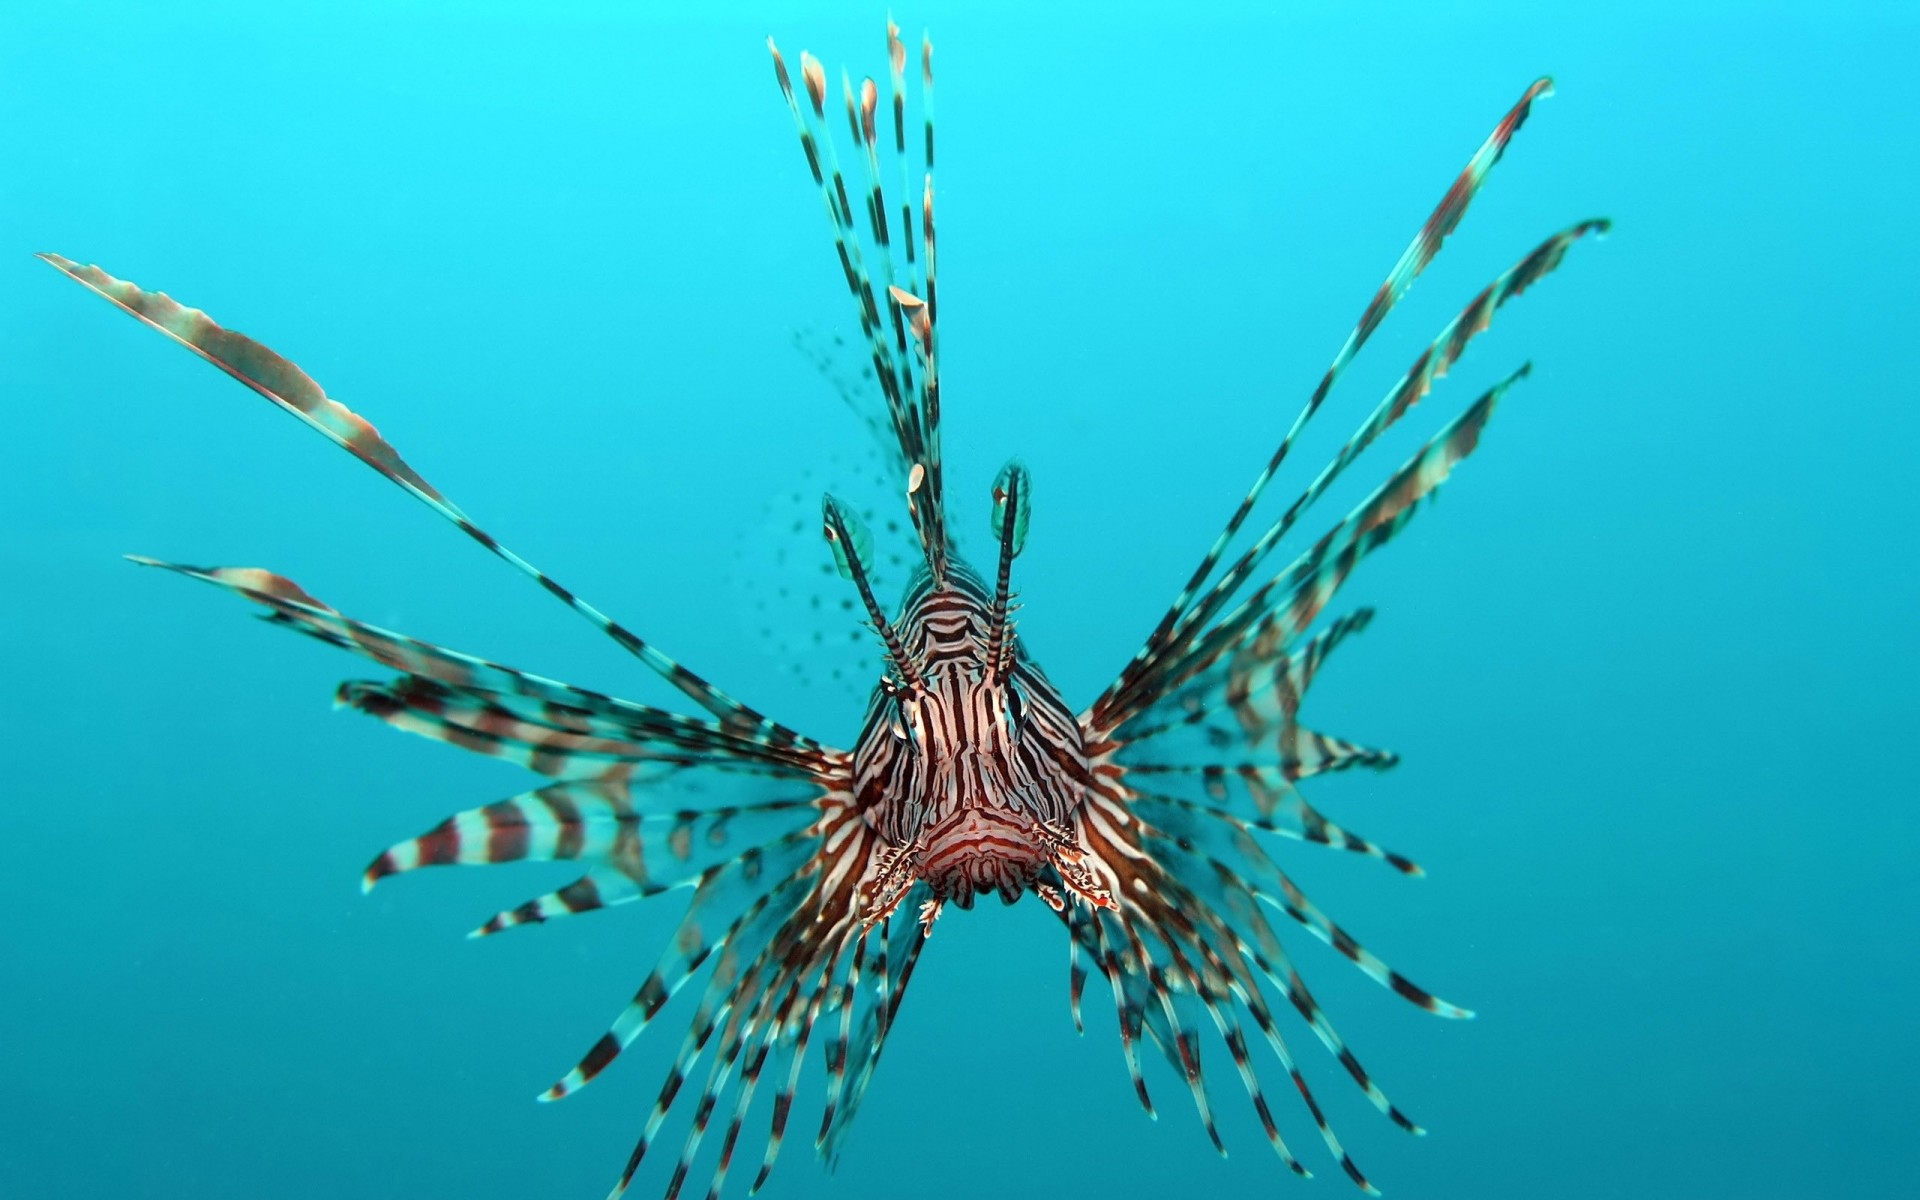 Res: 1920x1200, Lionfish animals fishes underwater sea ocean tropical water swim fins  wallpaper |  | 26649 | WallpaperUP